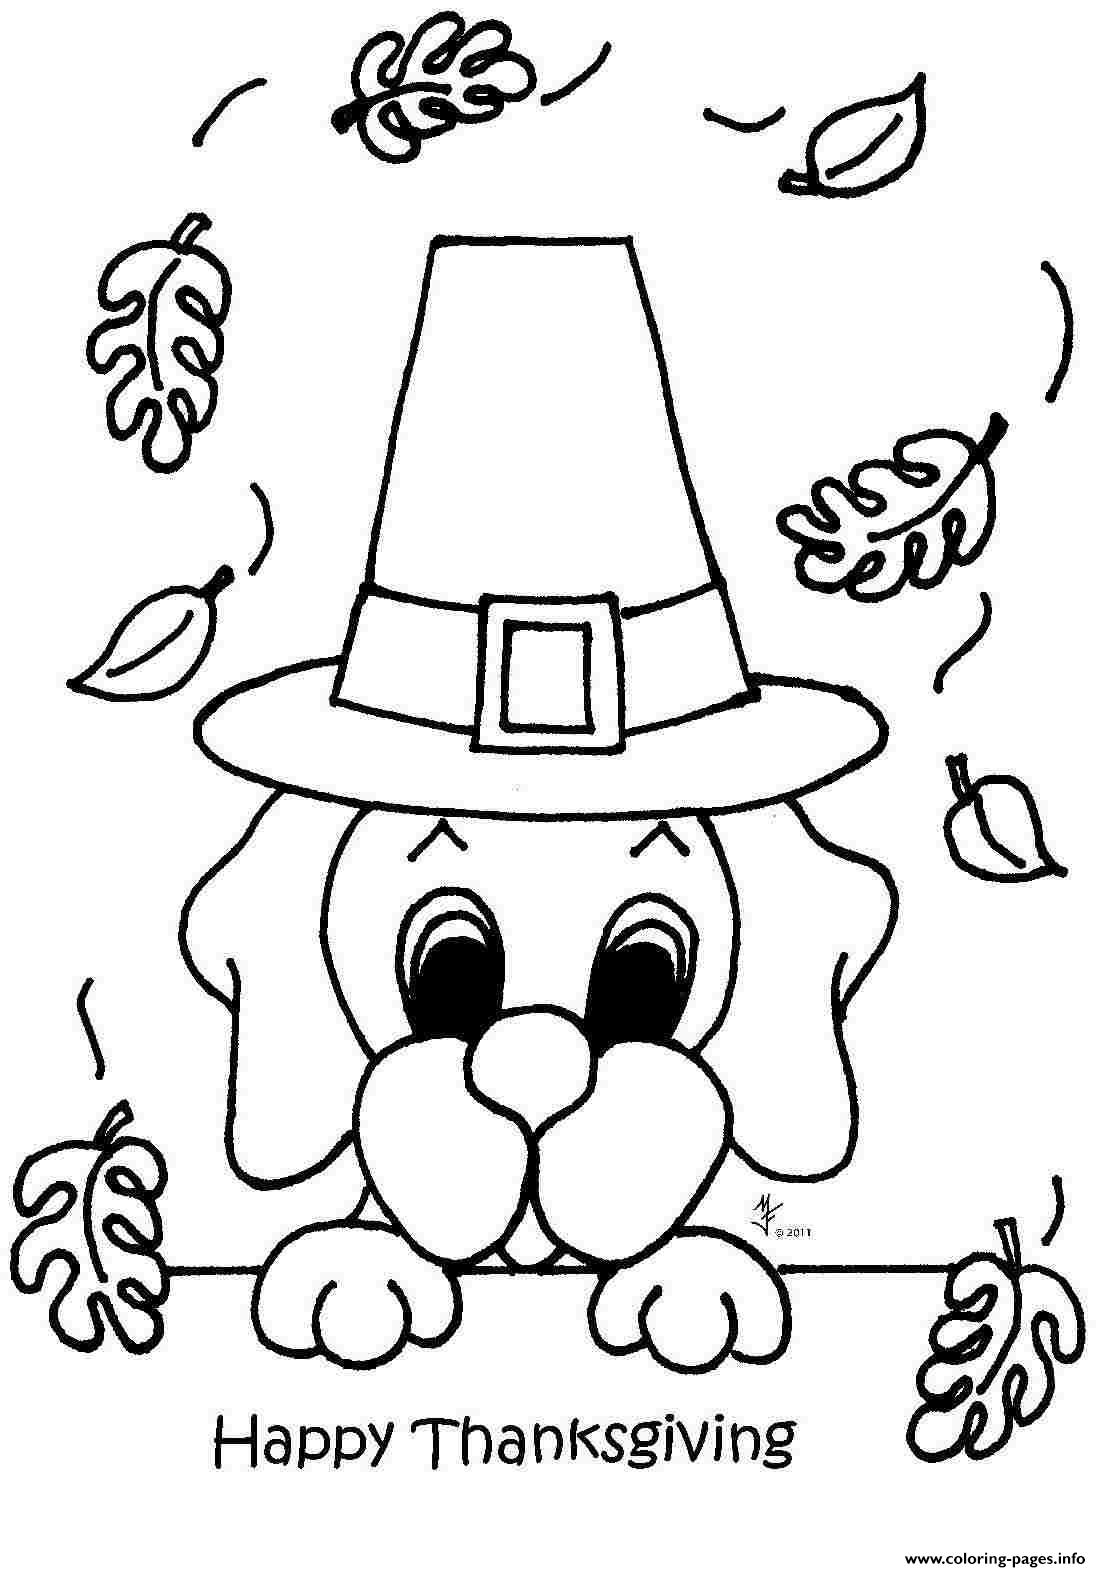 Happy Thanksgiving Cute Dog Coloring Pages Printable